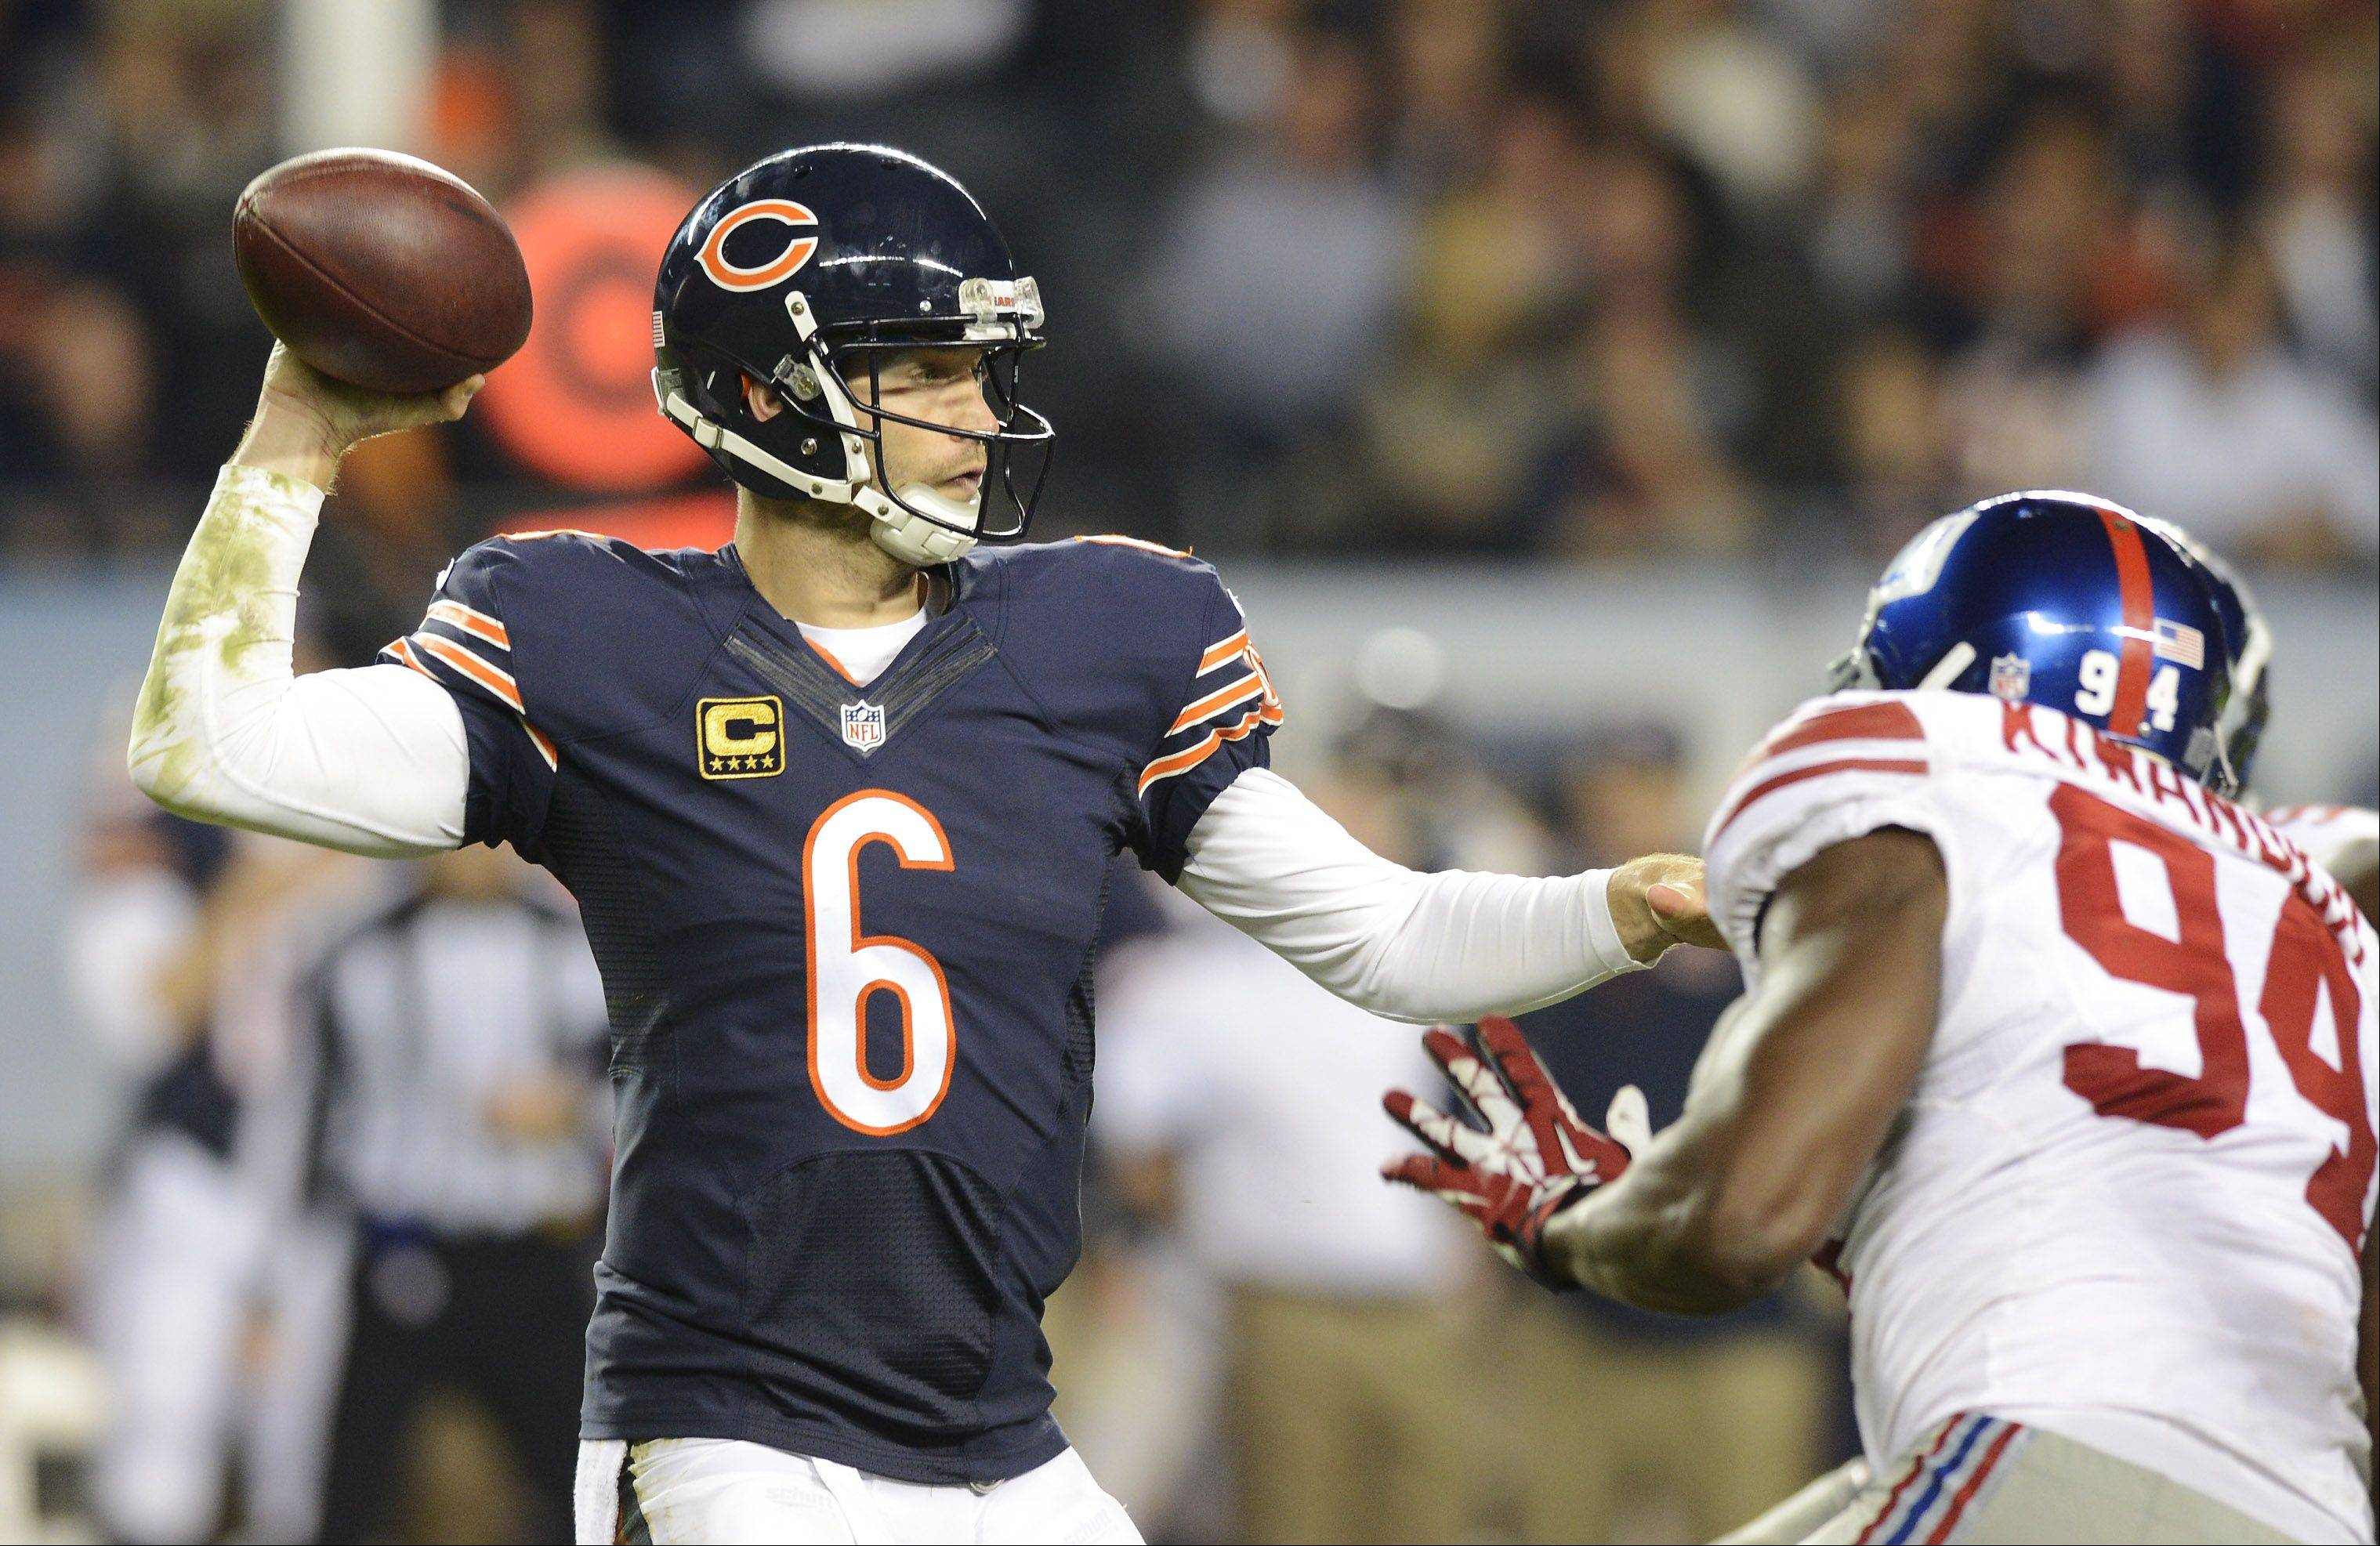 Jay Cutler throws a pass as Giants defensive end Mathias Kiwanuka closes during the Bears' victory on Oct. 10, 2013.